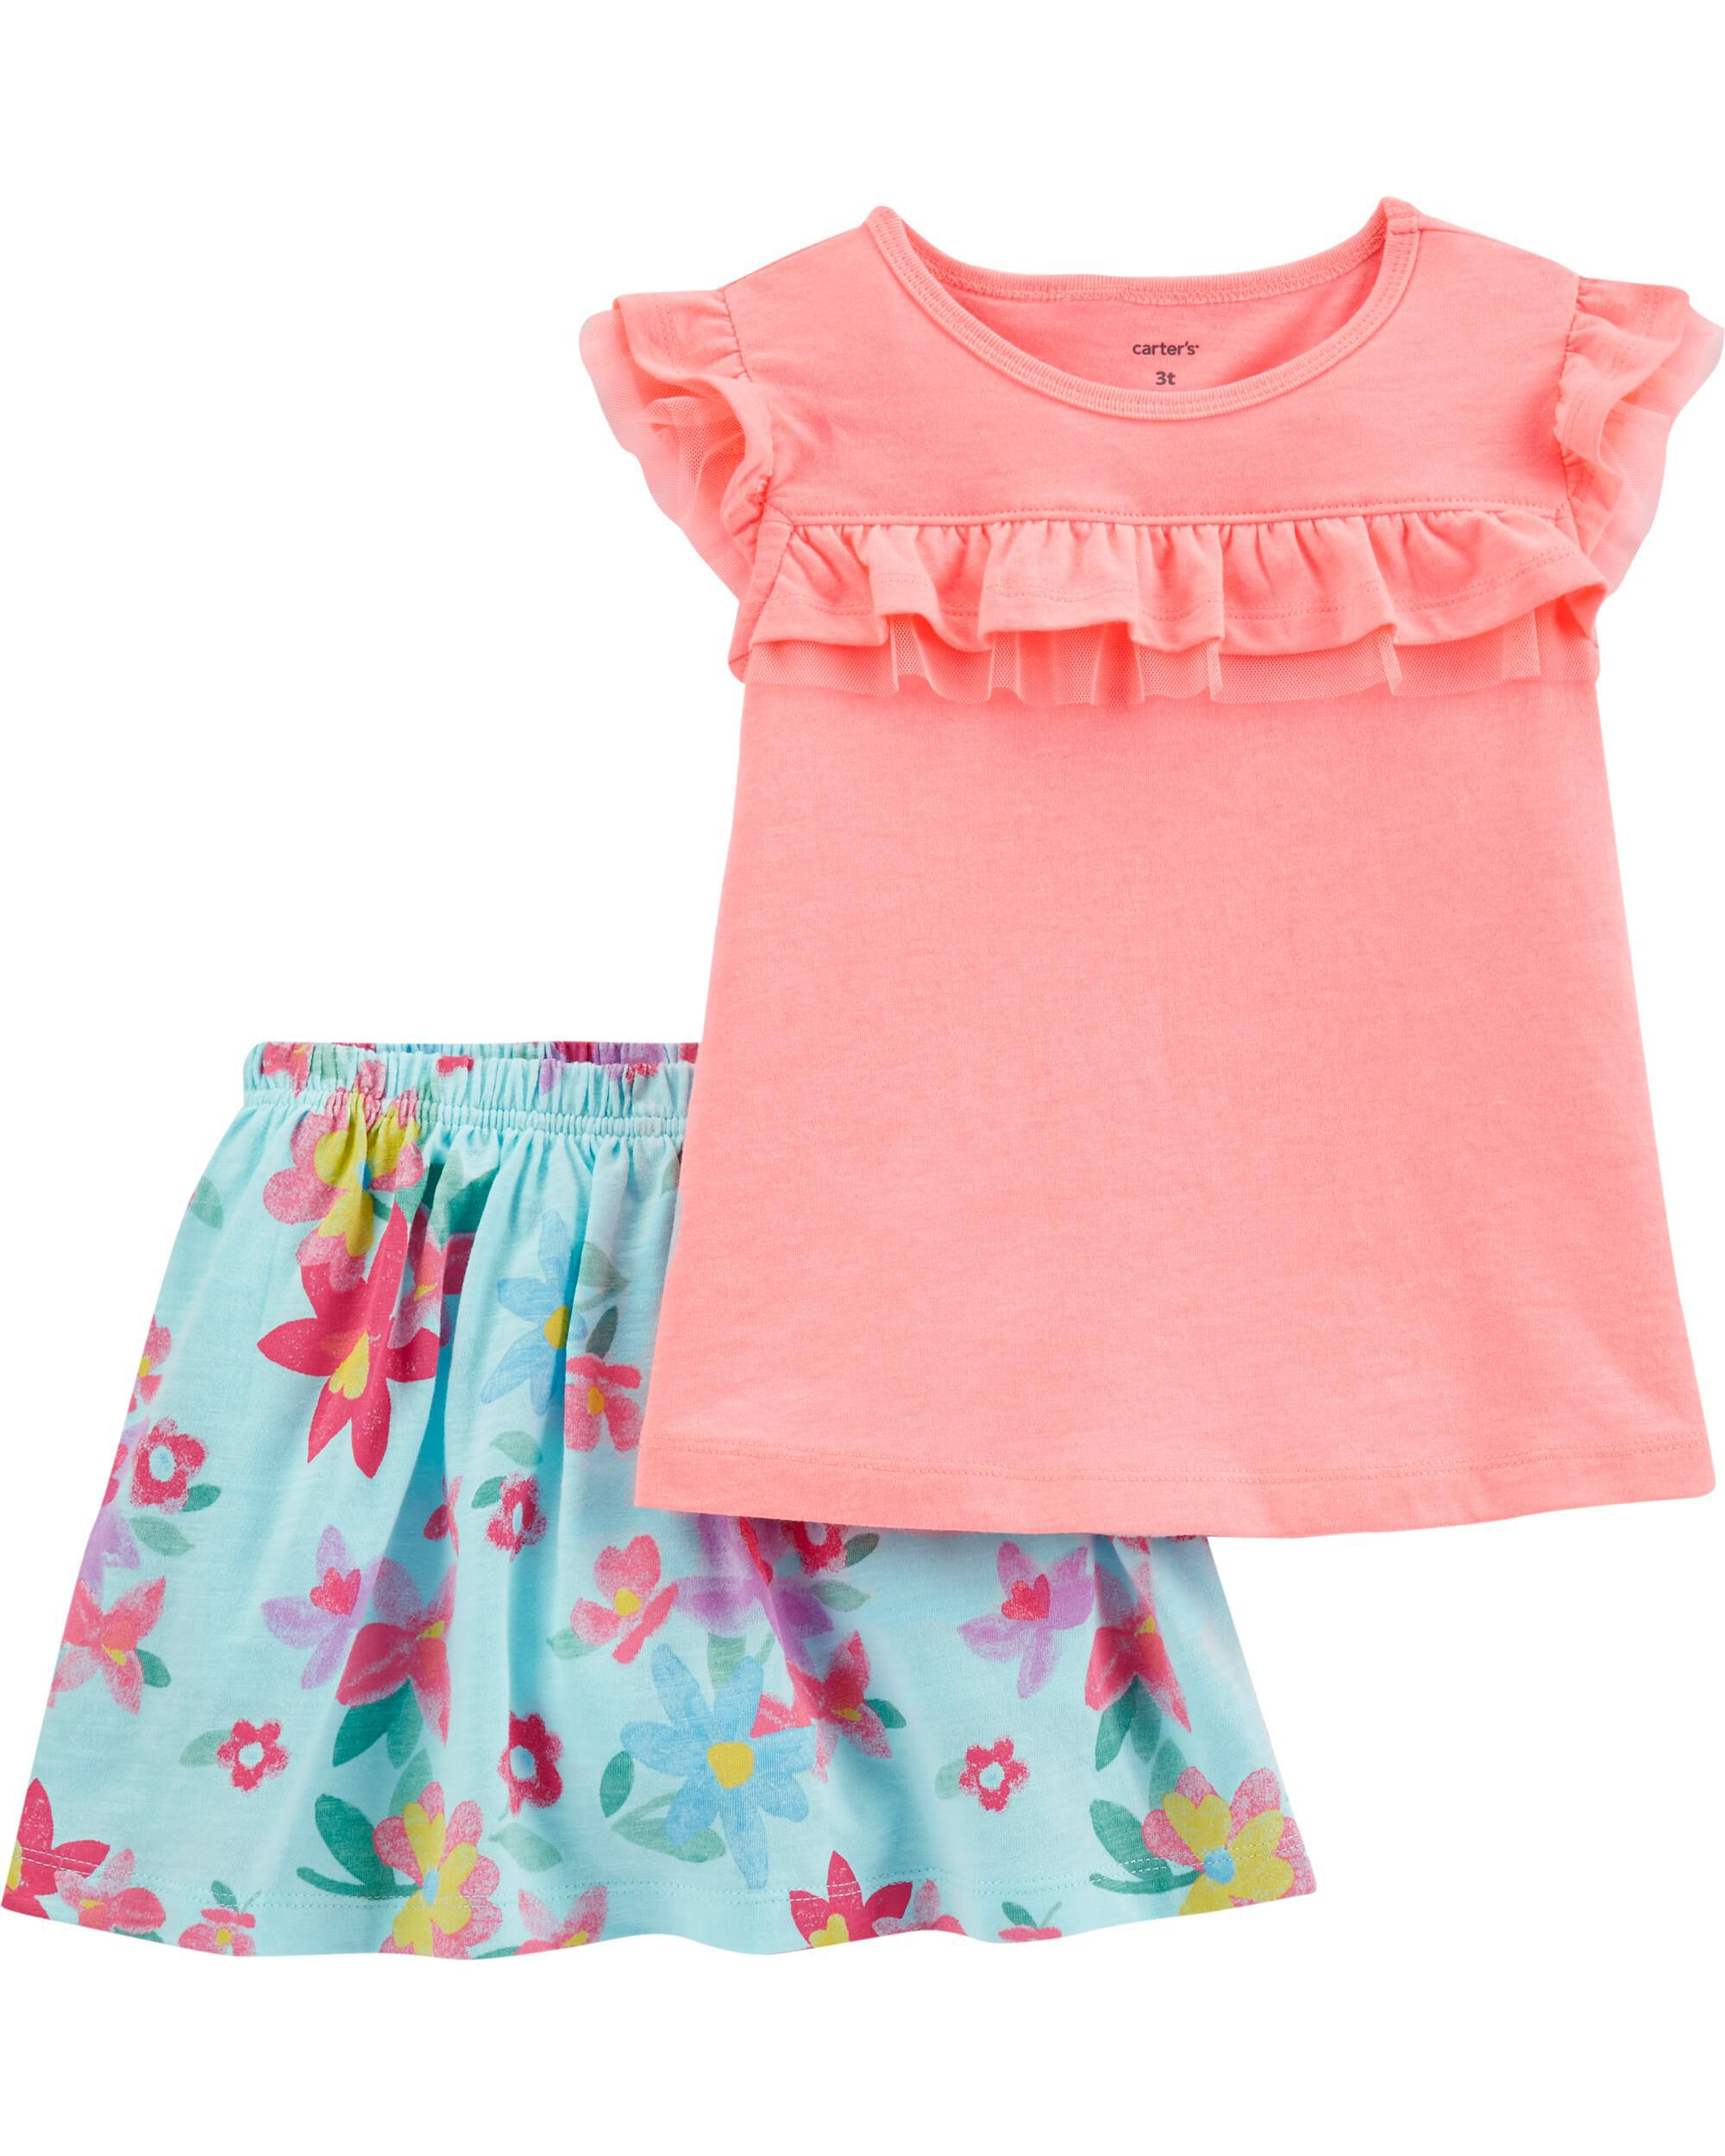 TODDLER GIRL/'S 7-PC PANTIES LICENSED 4T SIZE: 2//3T *NWT- DISNEY